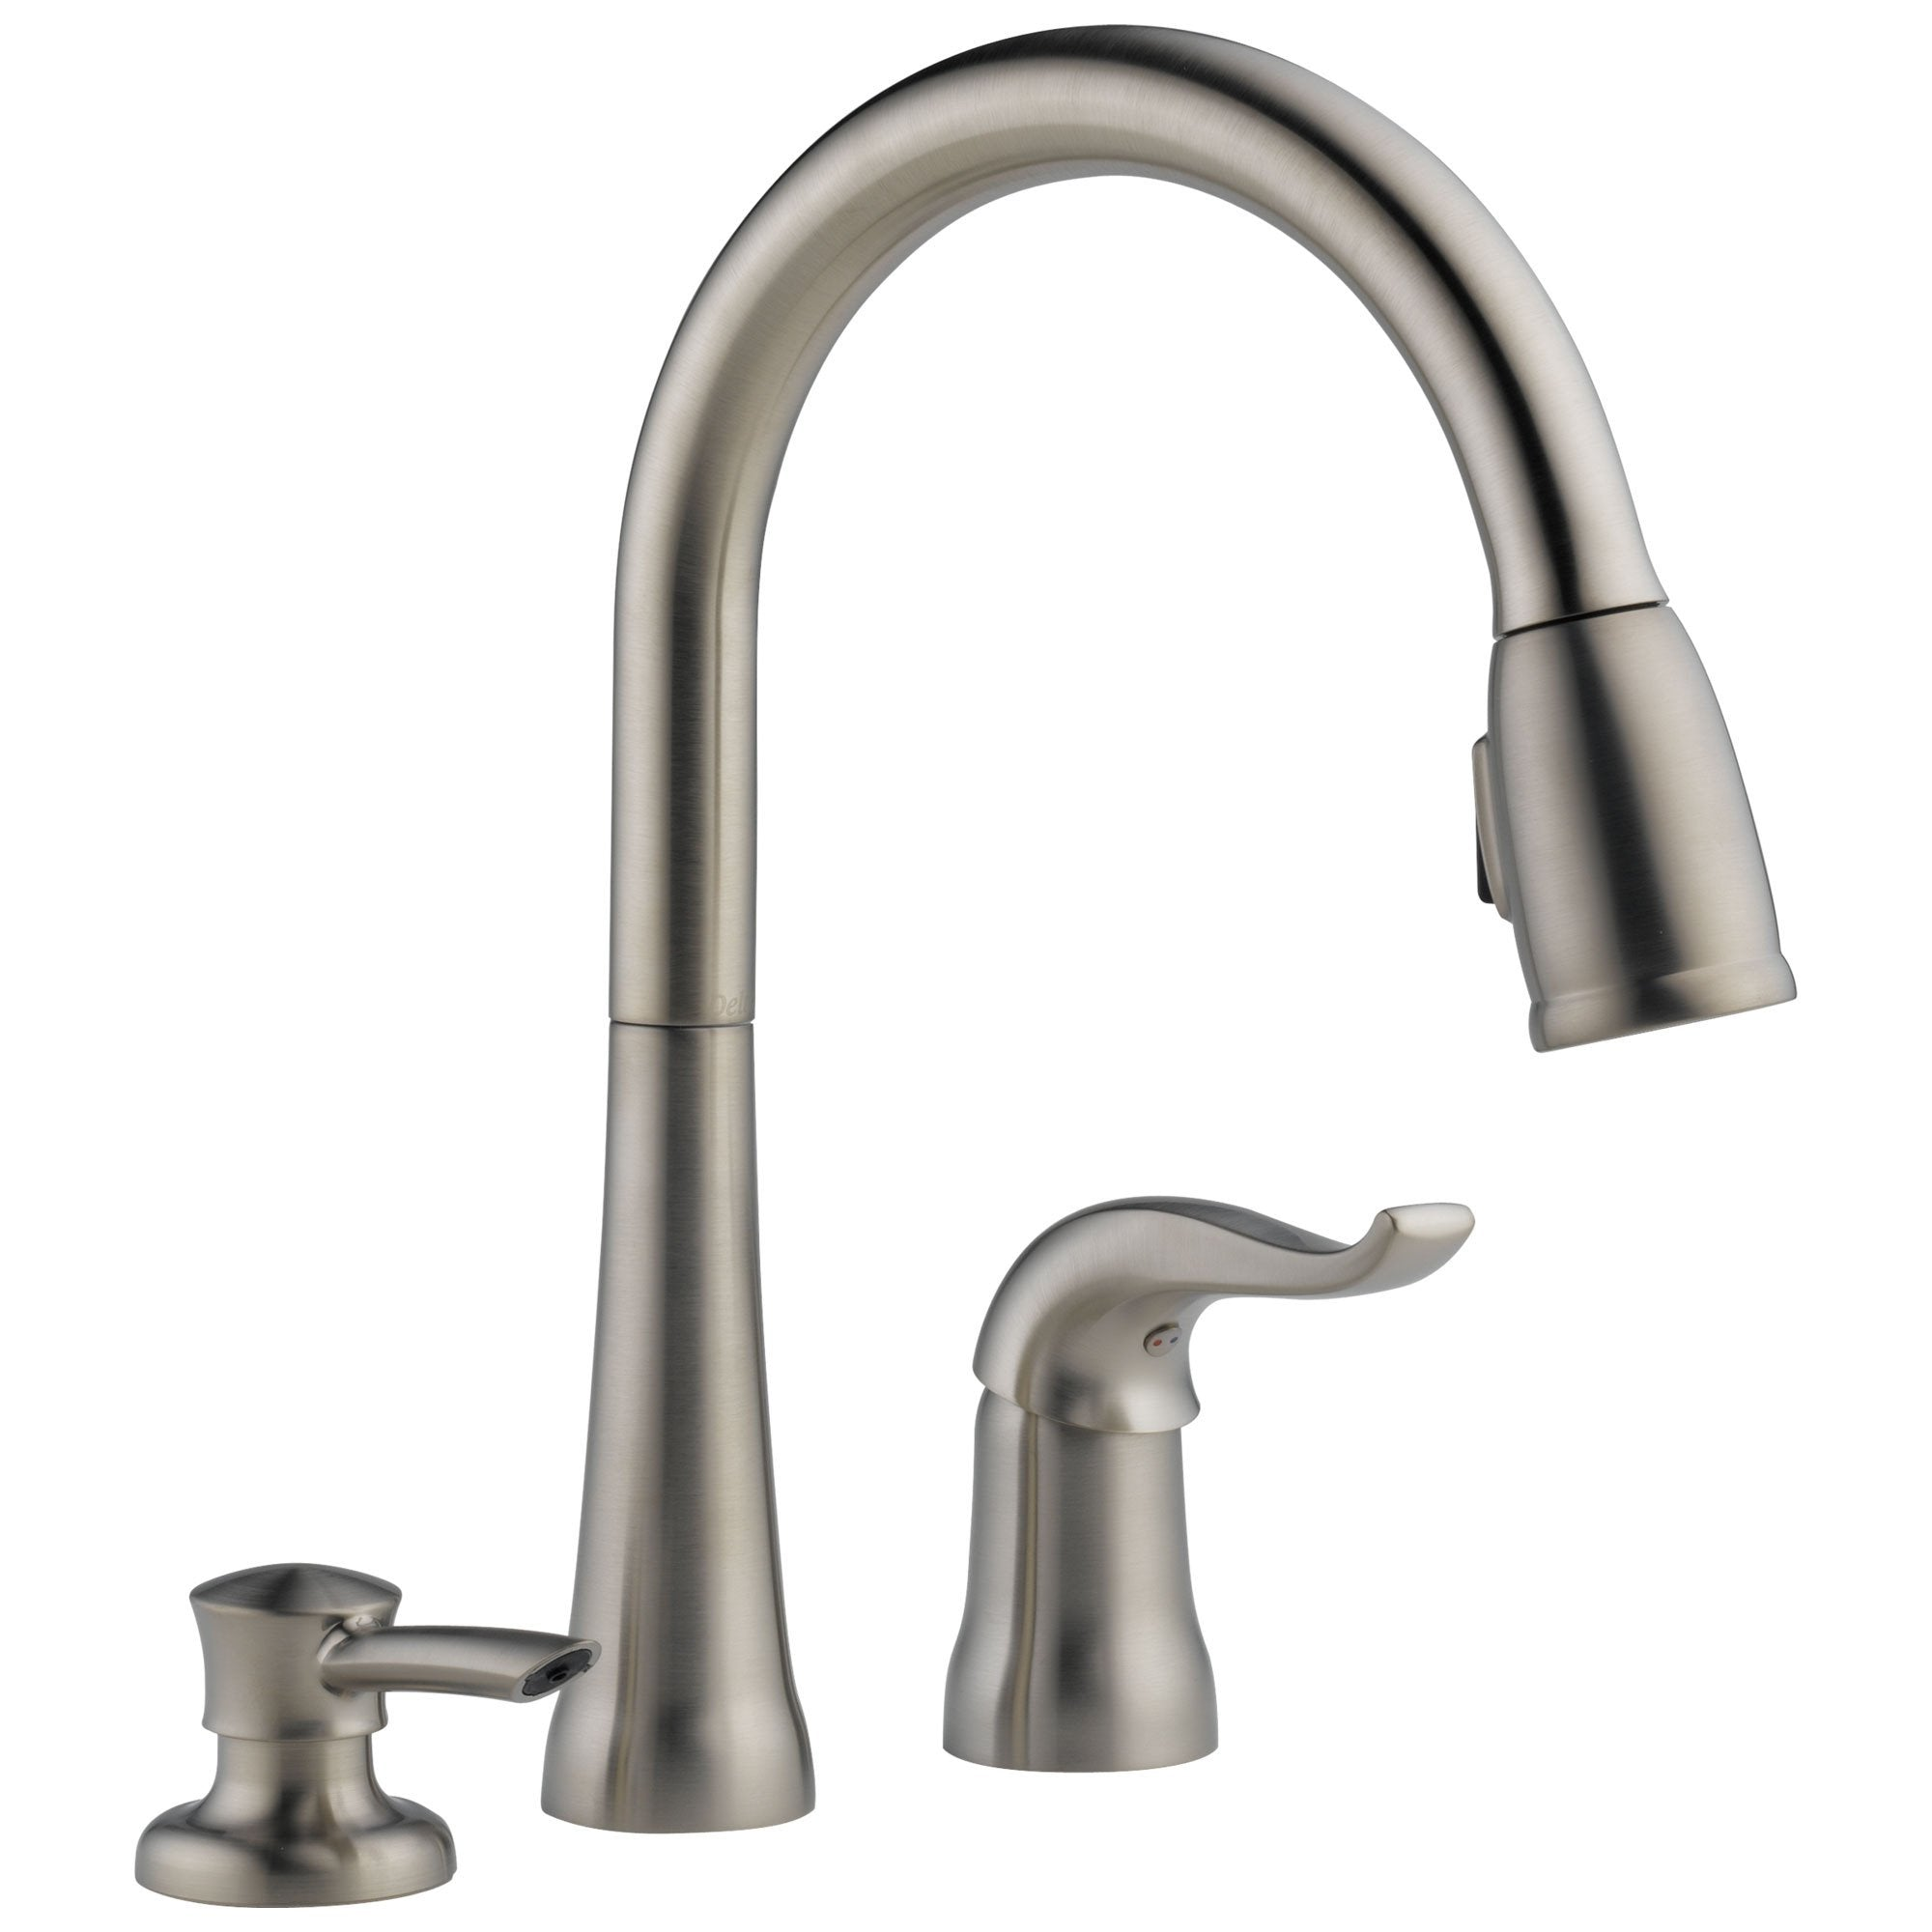 Delta Stainless Steel Finish Single Handle 3 Hole Pull-Down Sprayer Kitchen  Sink Faucet with Soap Dispenser D16970SSSDDST